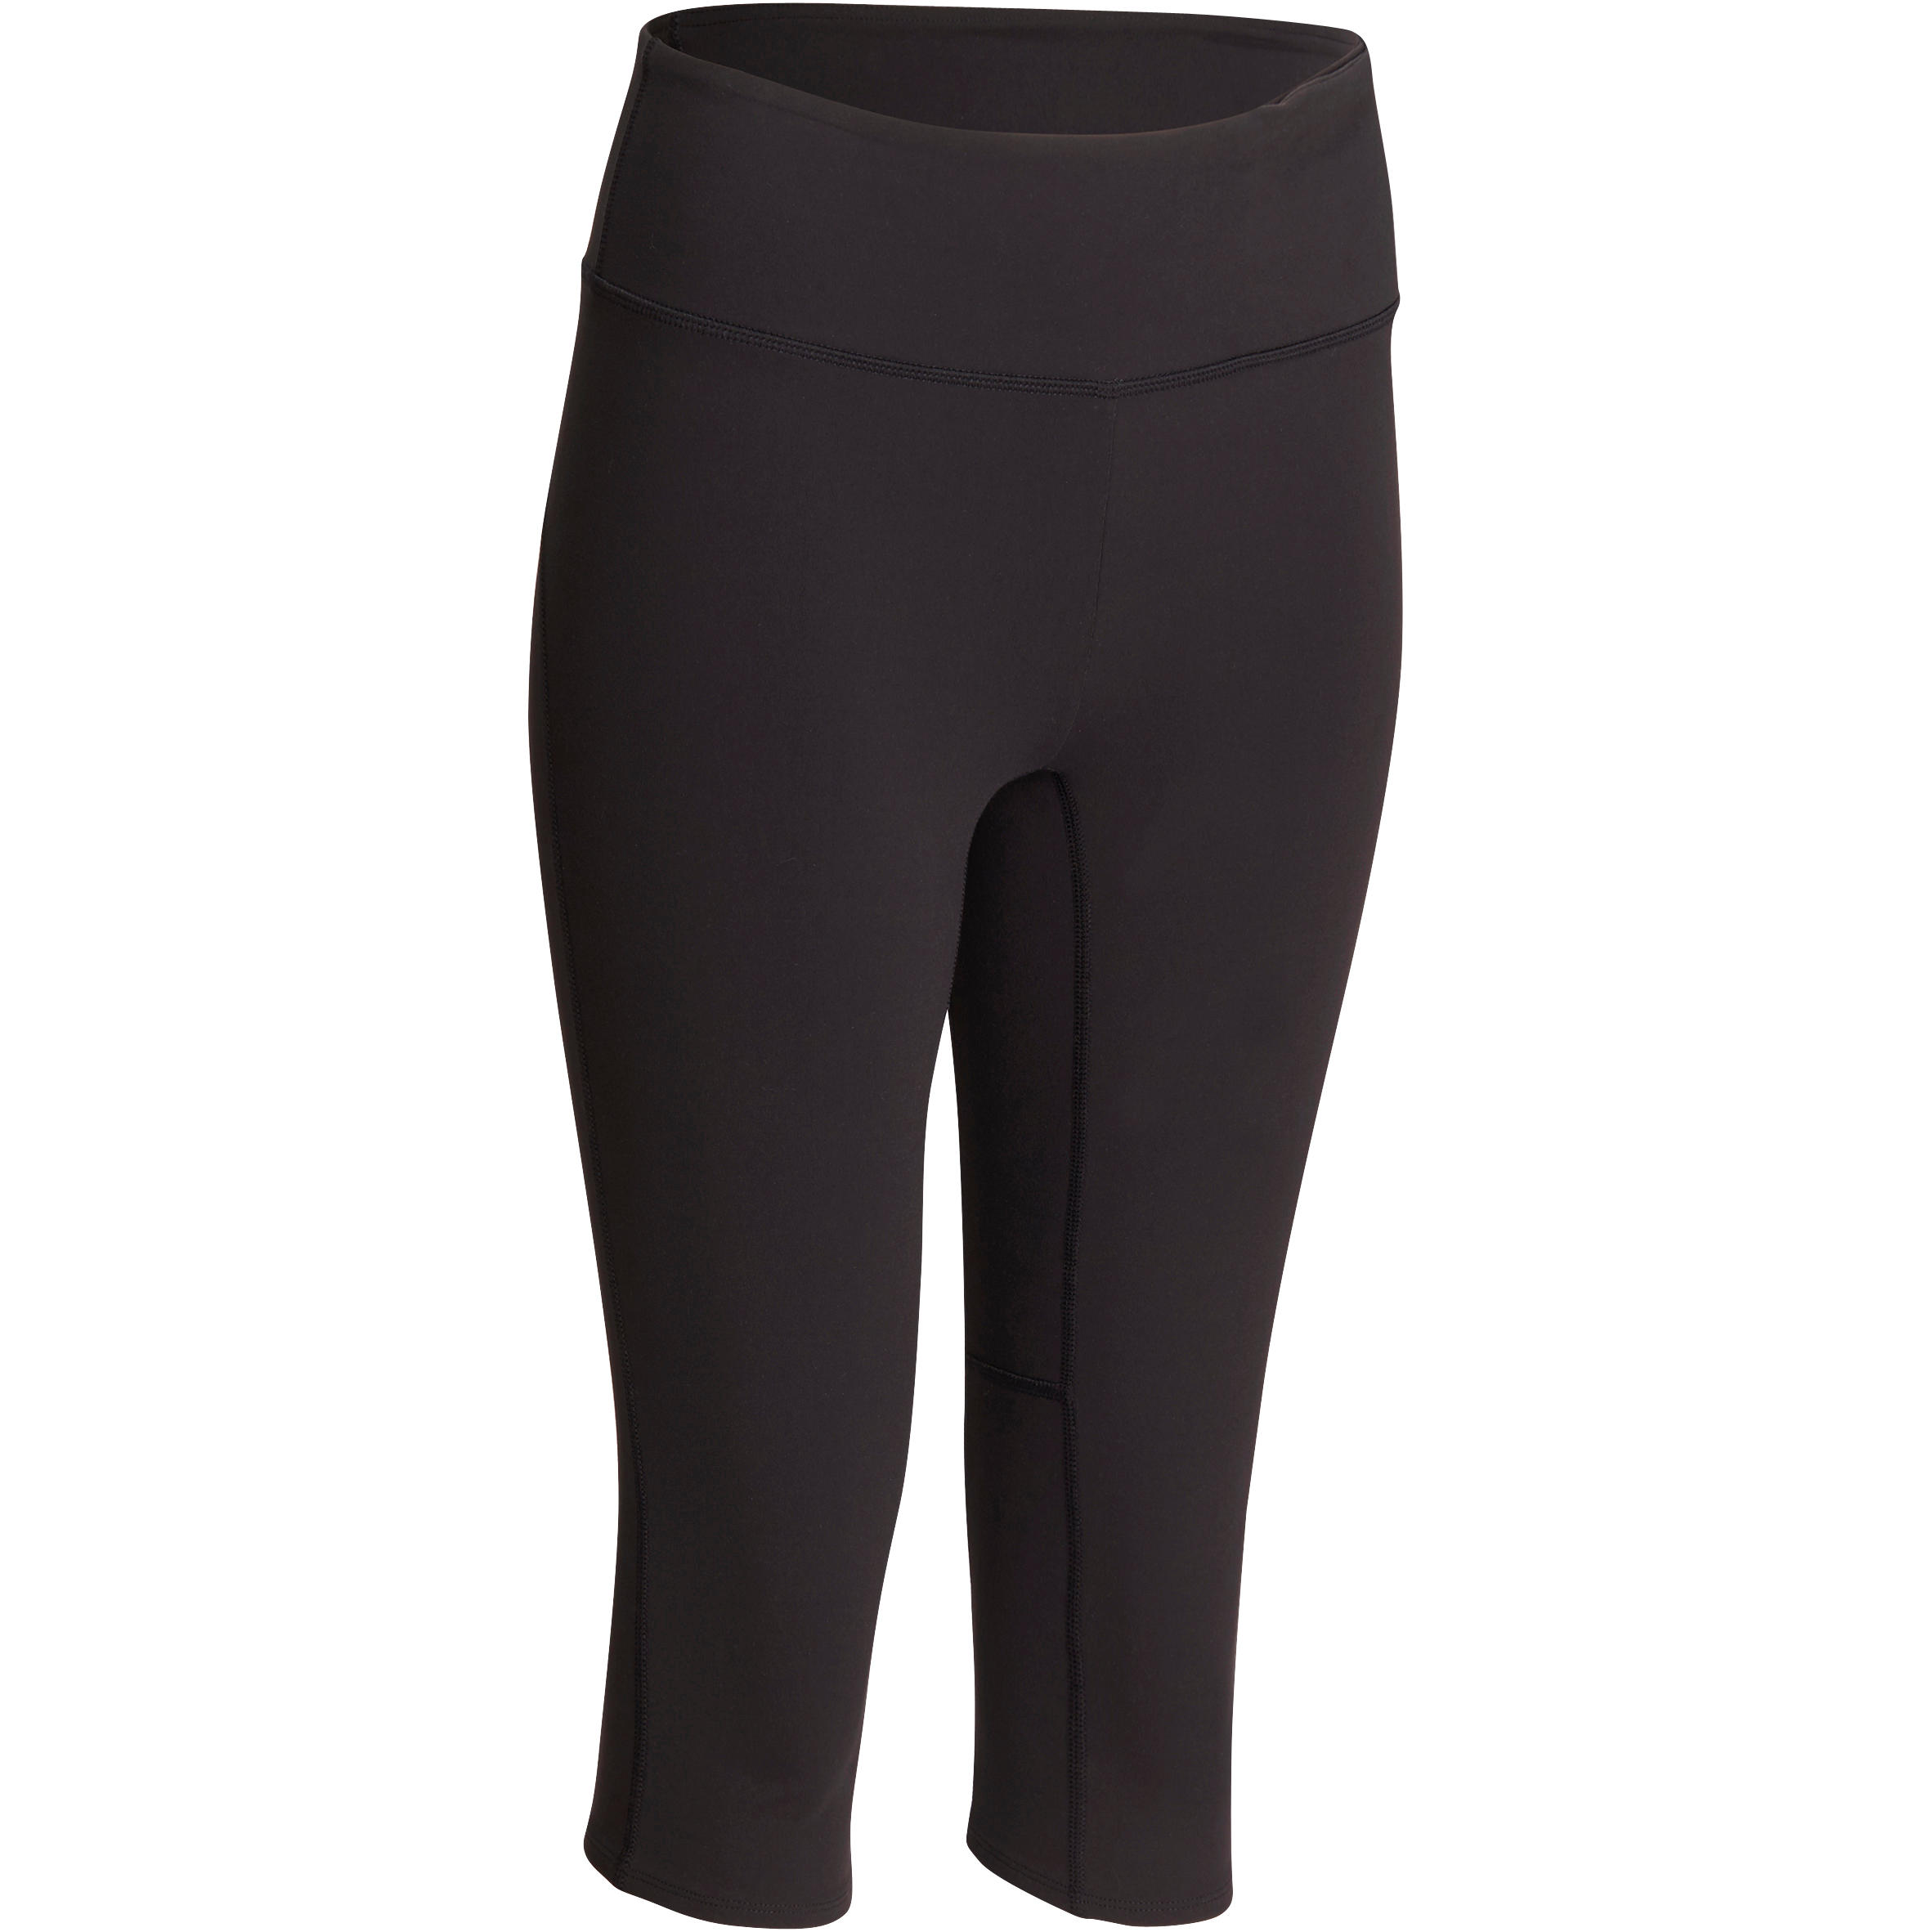 Women's Dynamic Yoga Cropped Bottoms - Black